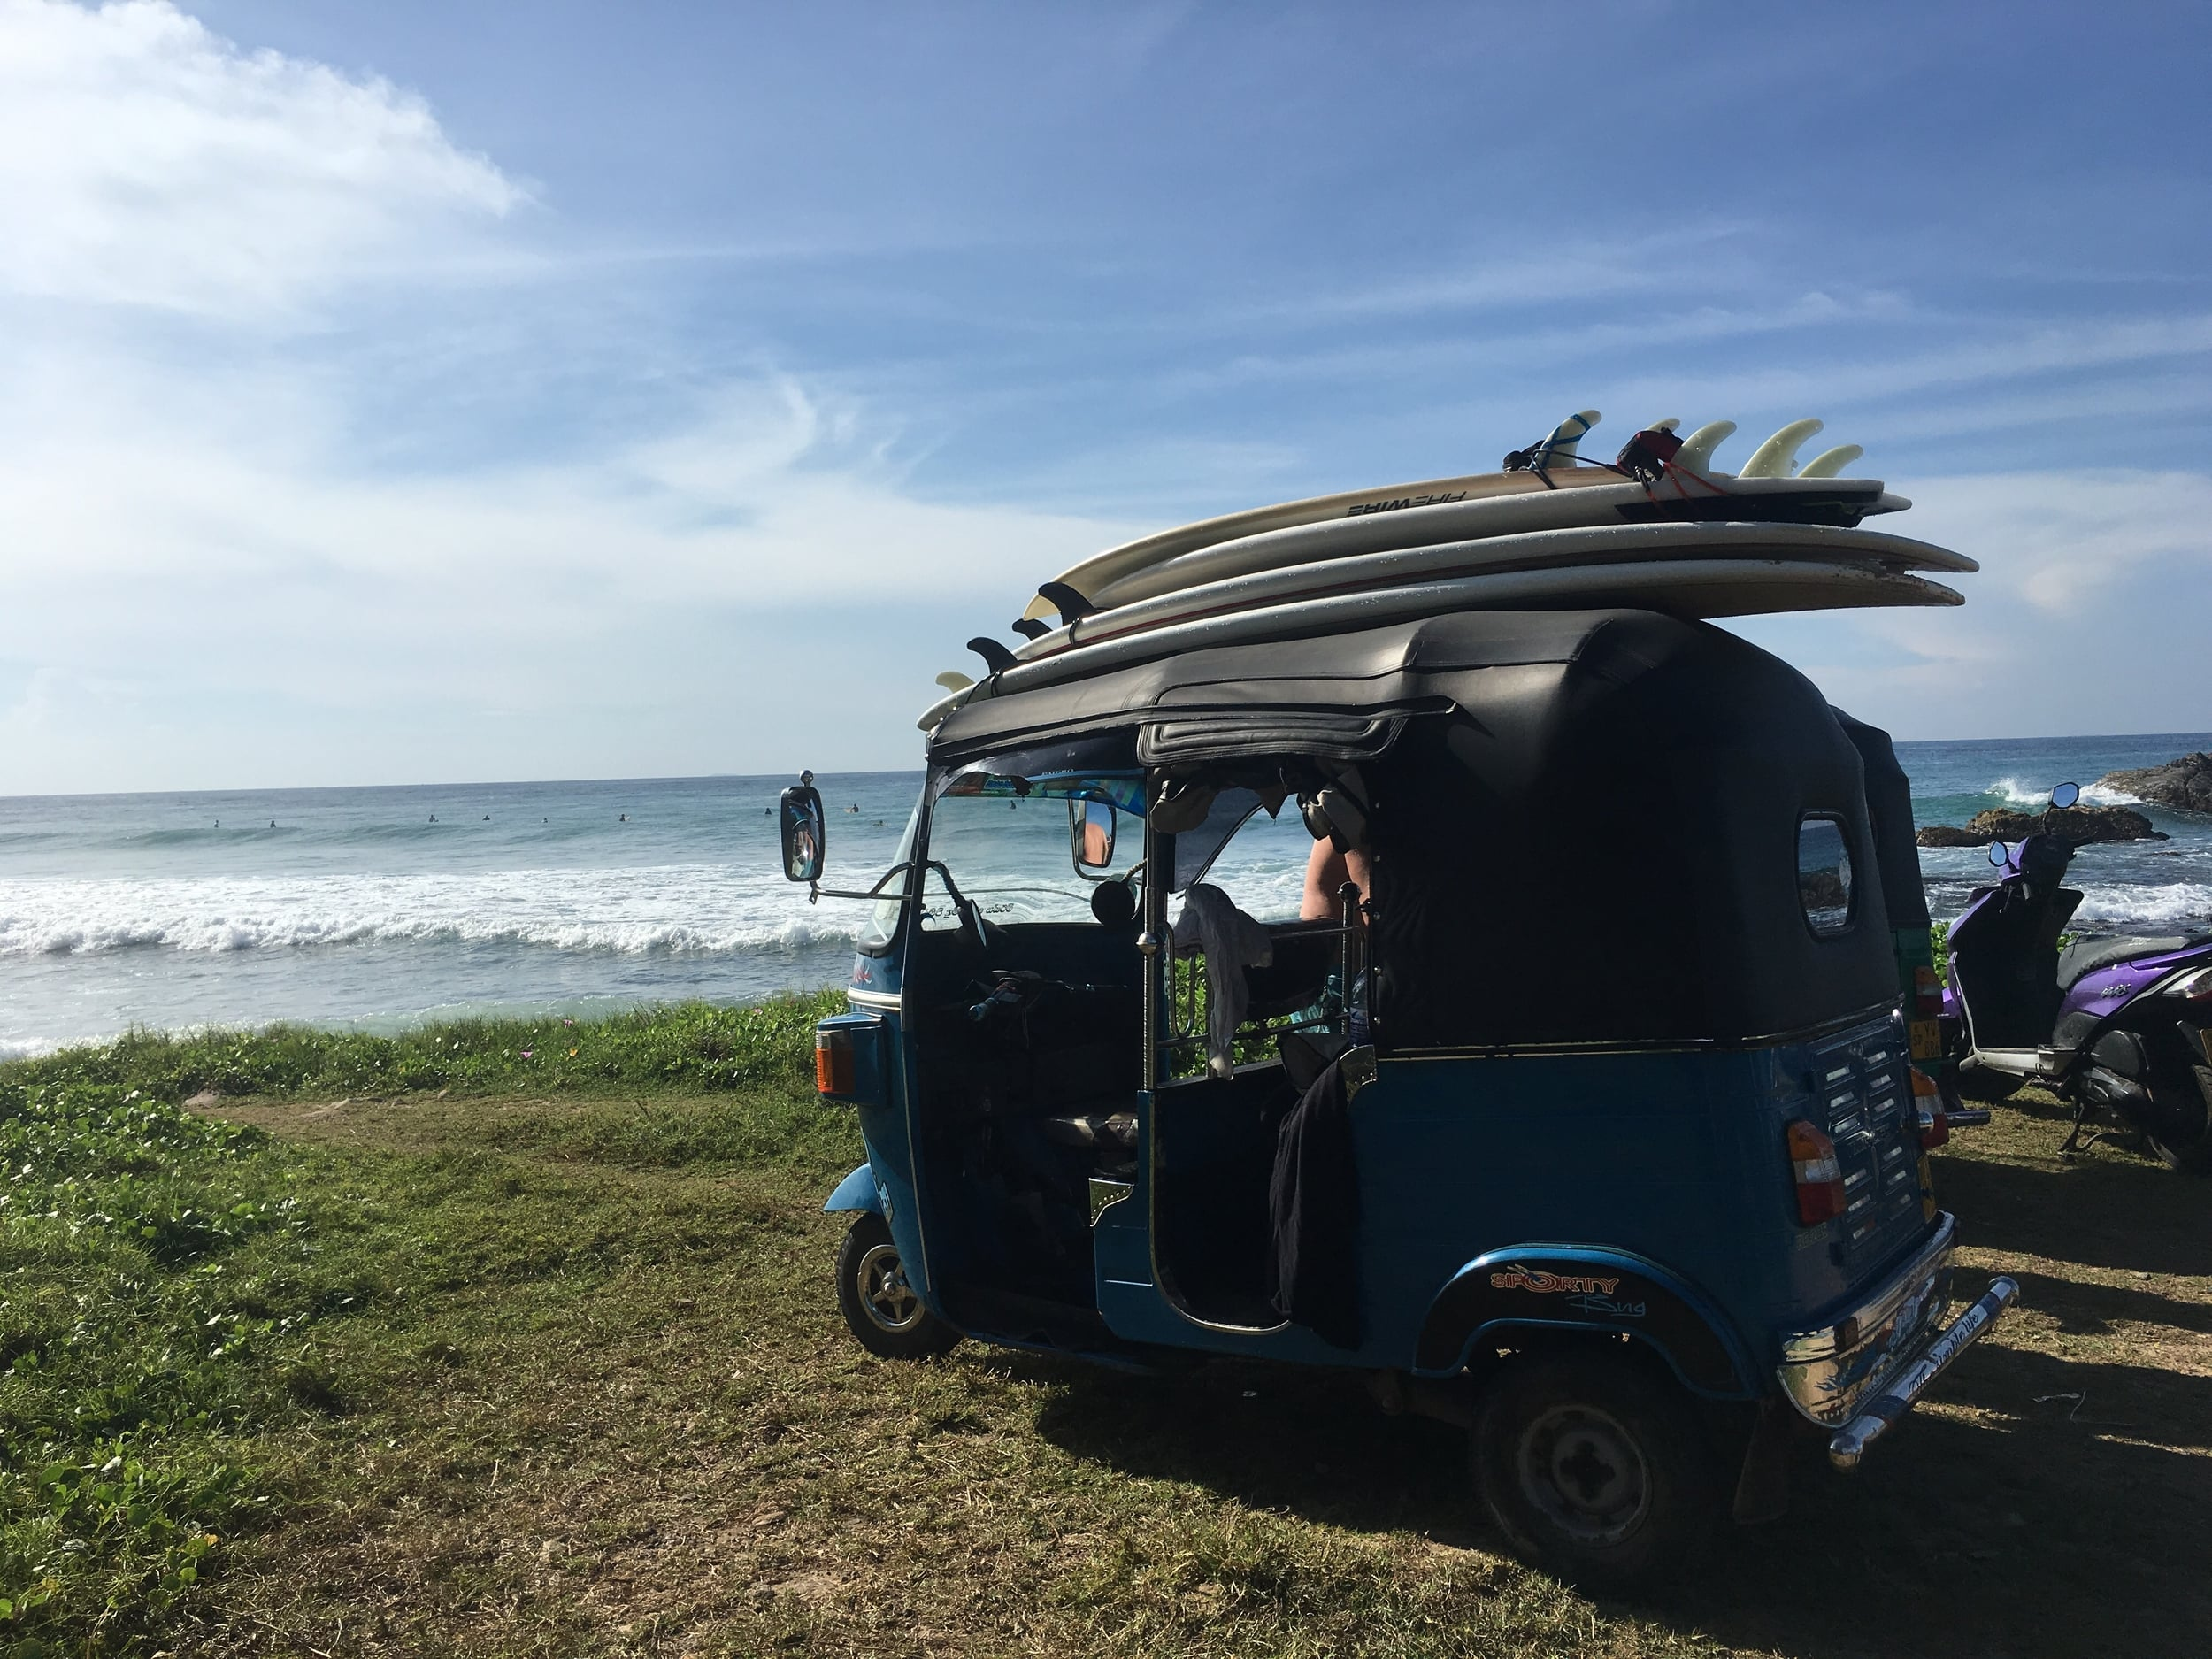 Crash course surf tuk tuk driving is exactly as terrifyingly adventurous as it sounds.